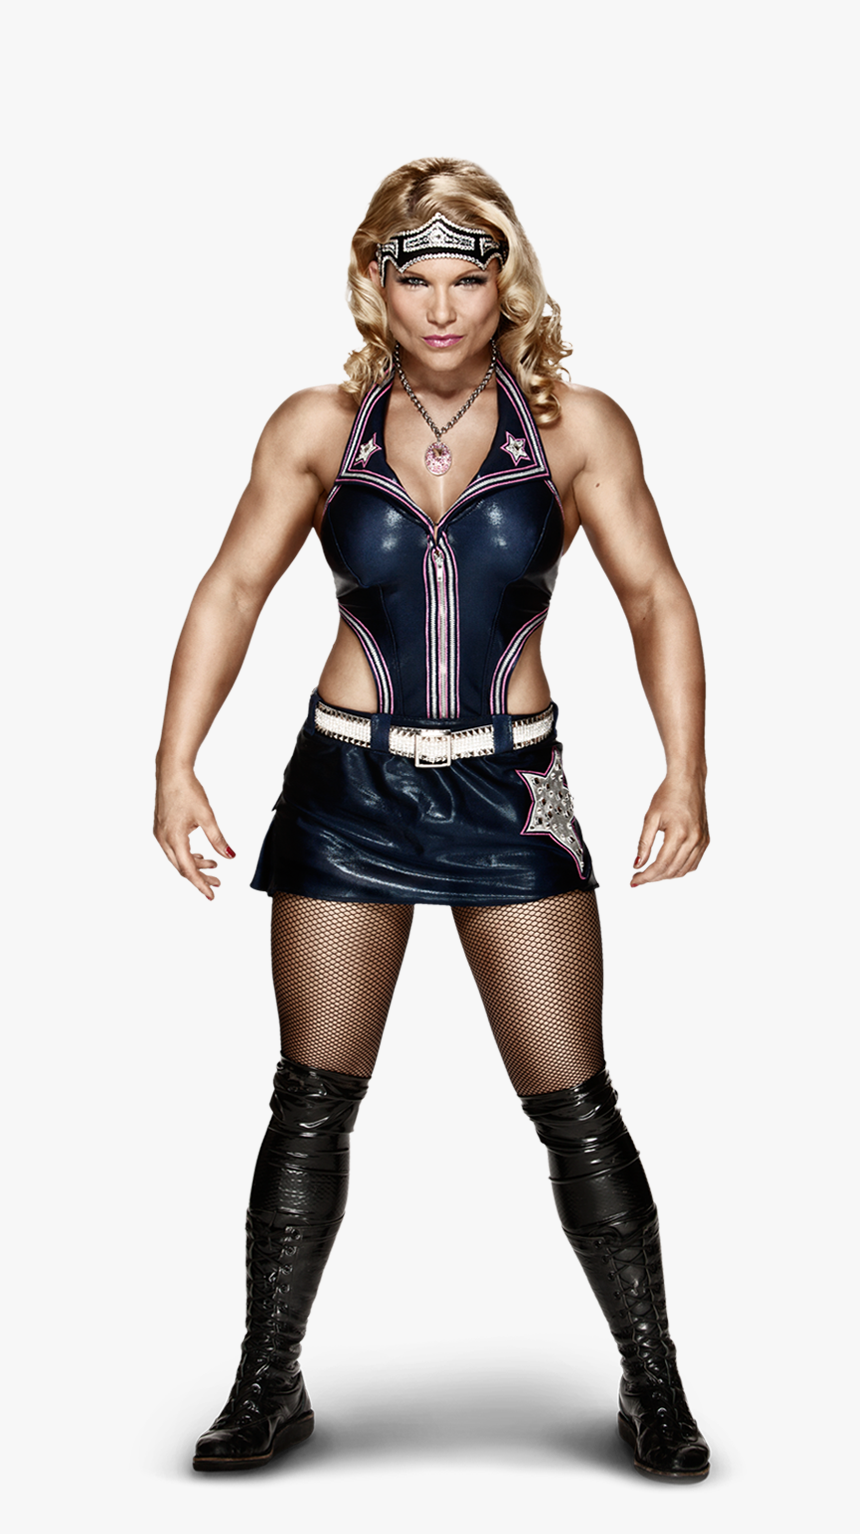 Wwe Beth Phoenix Png, Transparent Png, Free Download